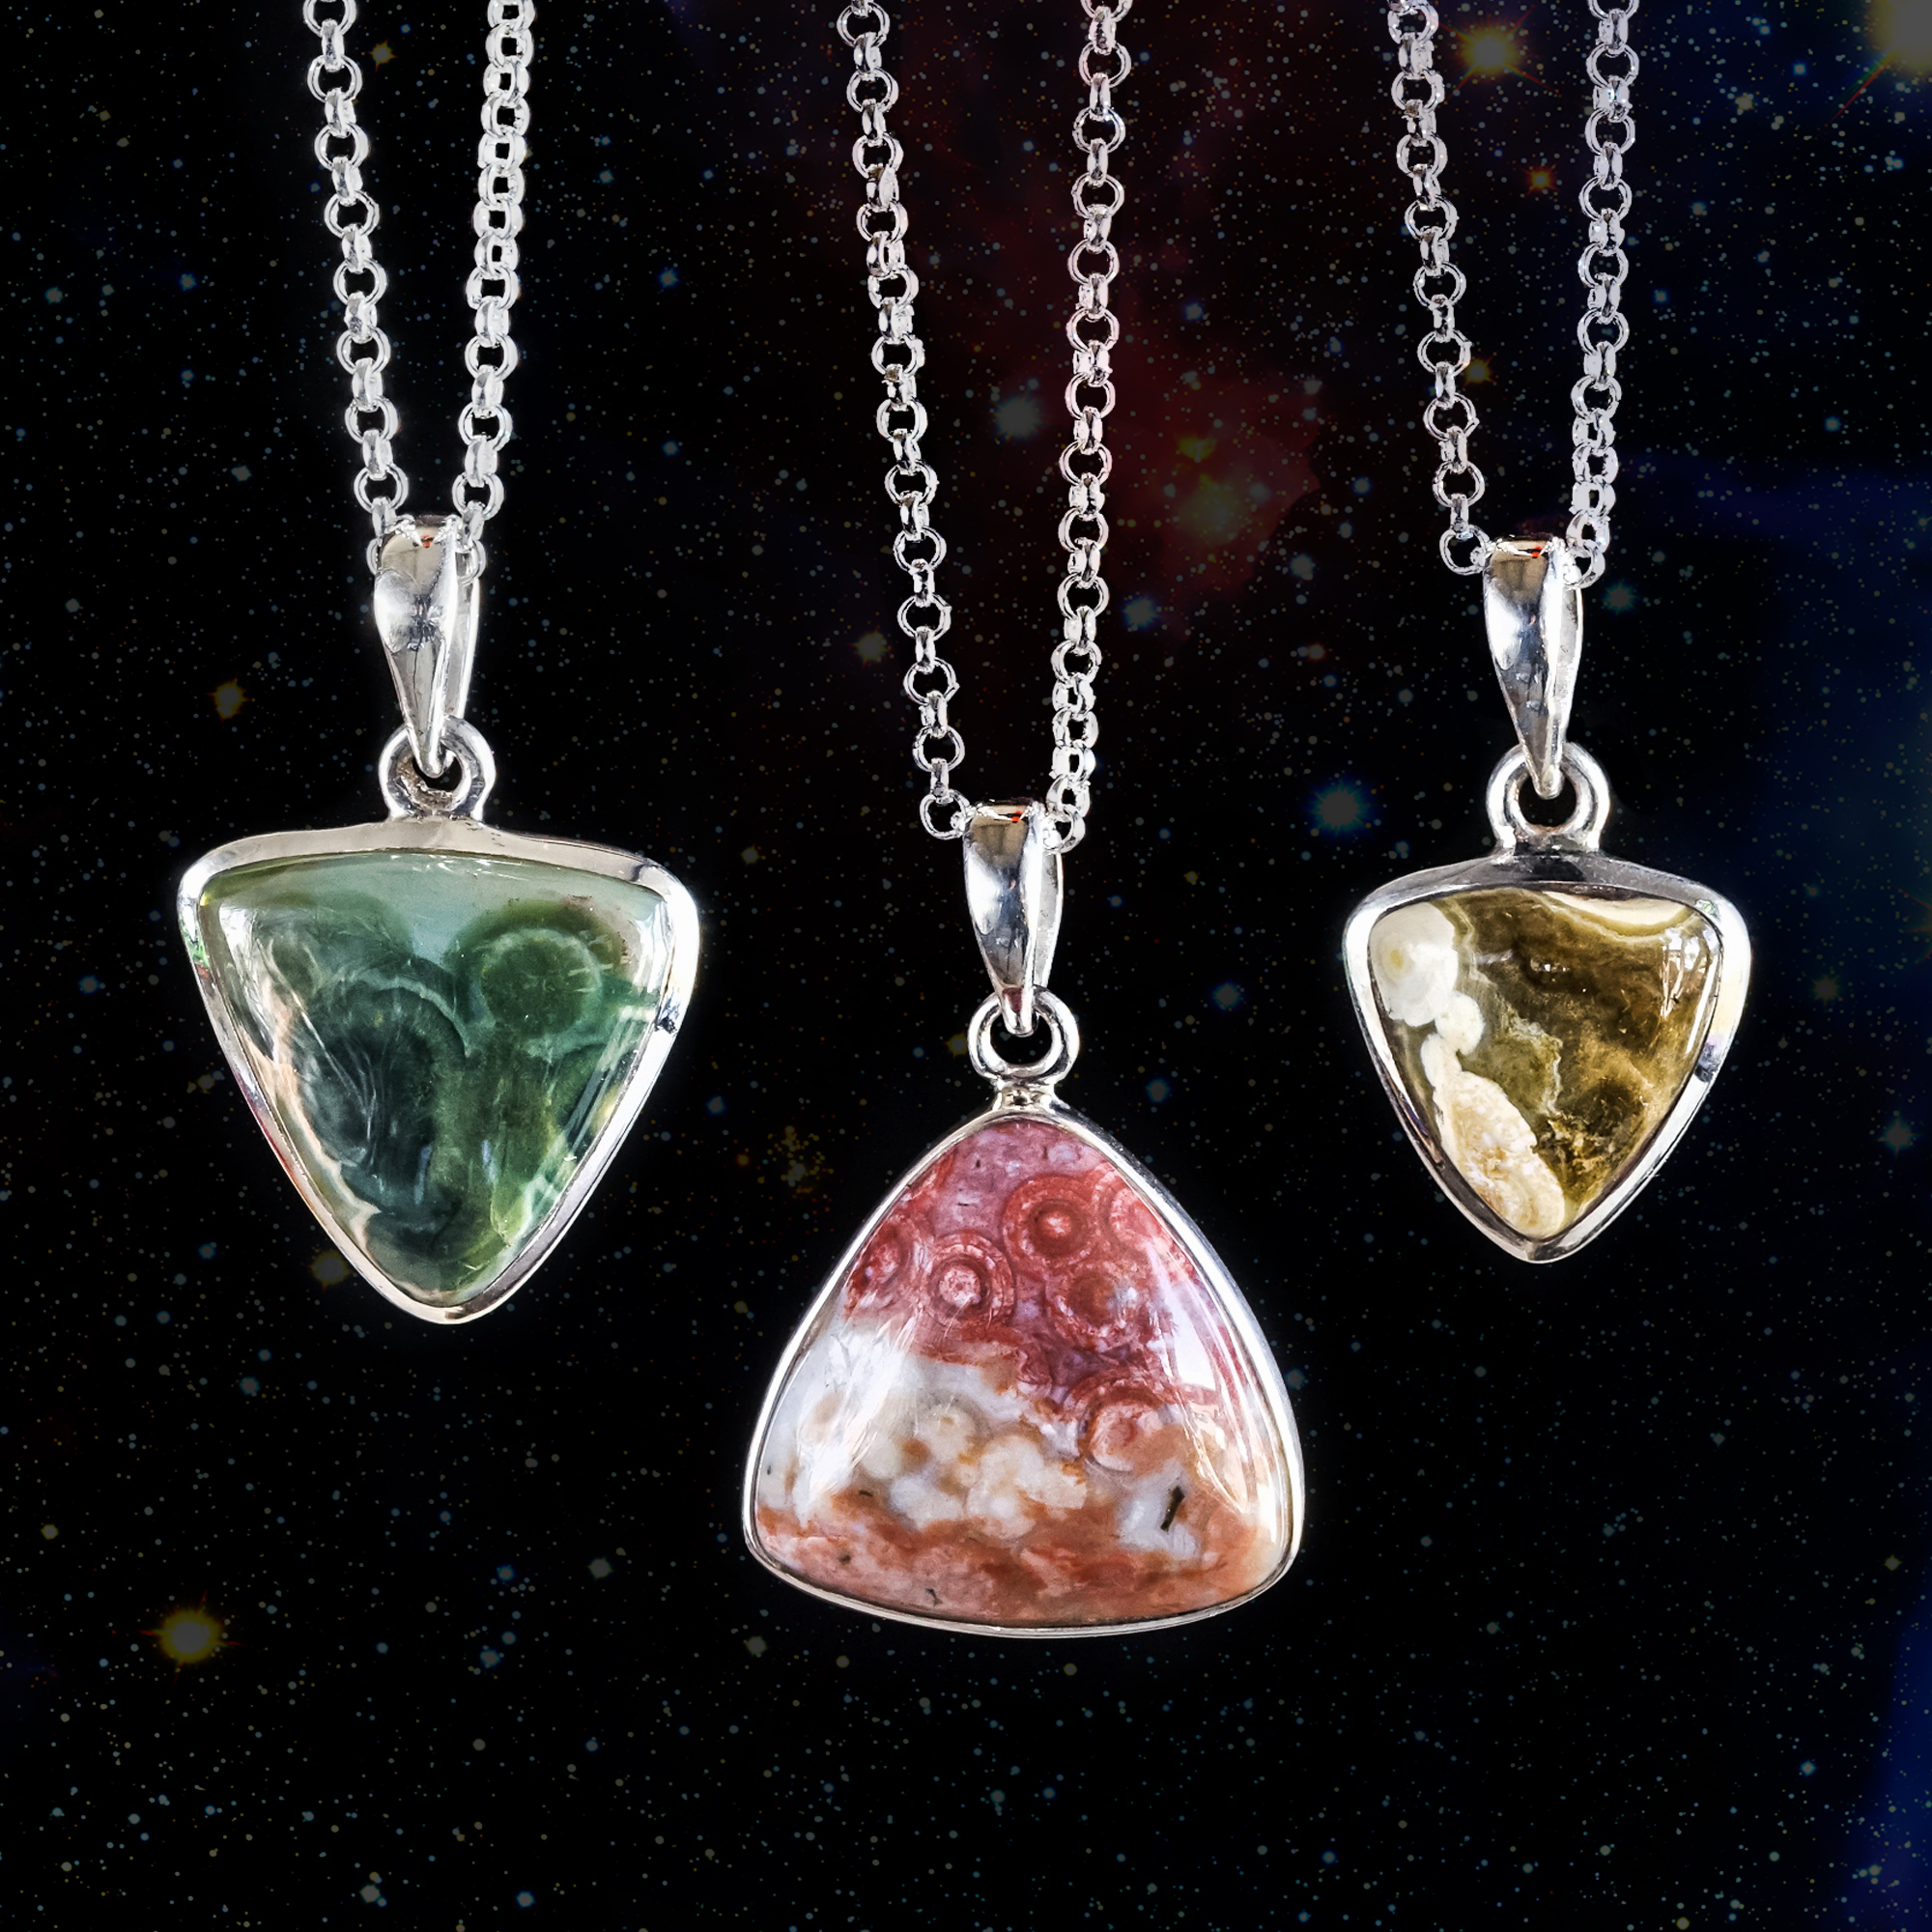 Ocean jasper pendants for attracting love and happiness aloadofball Image collections